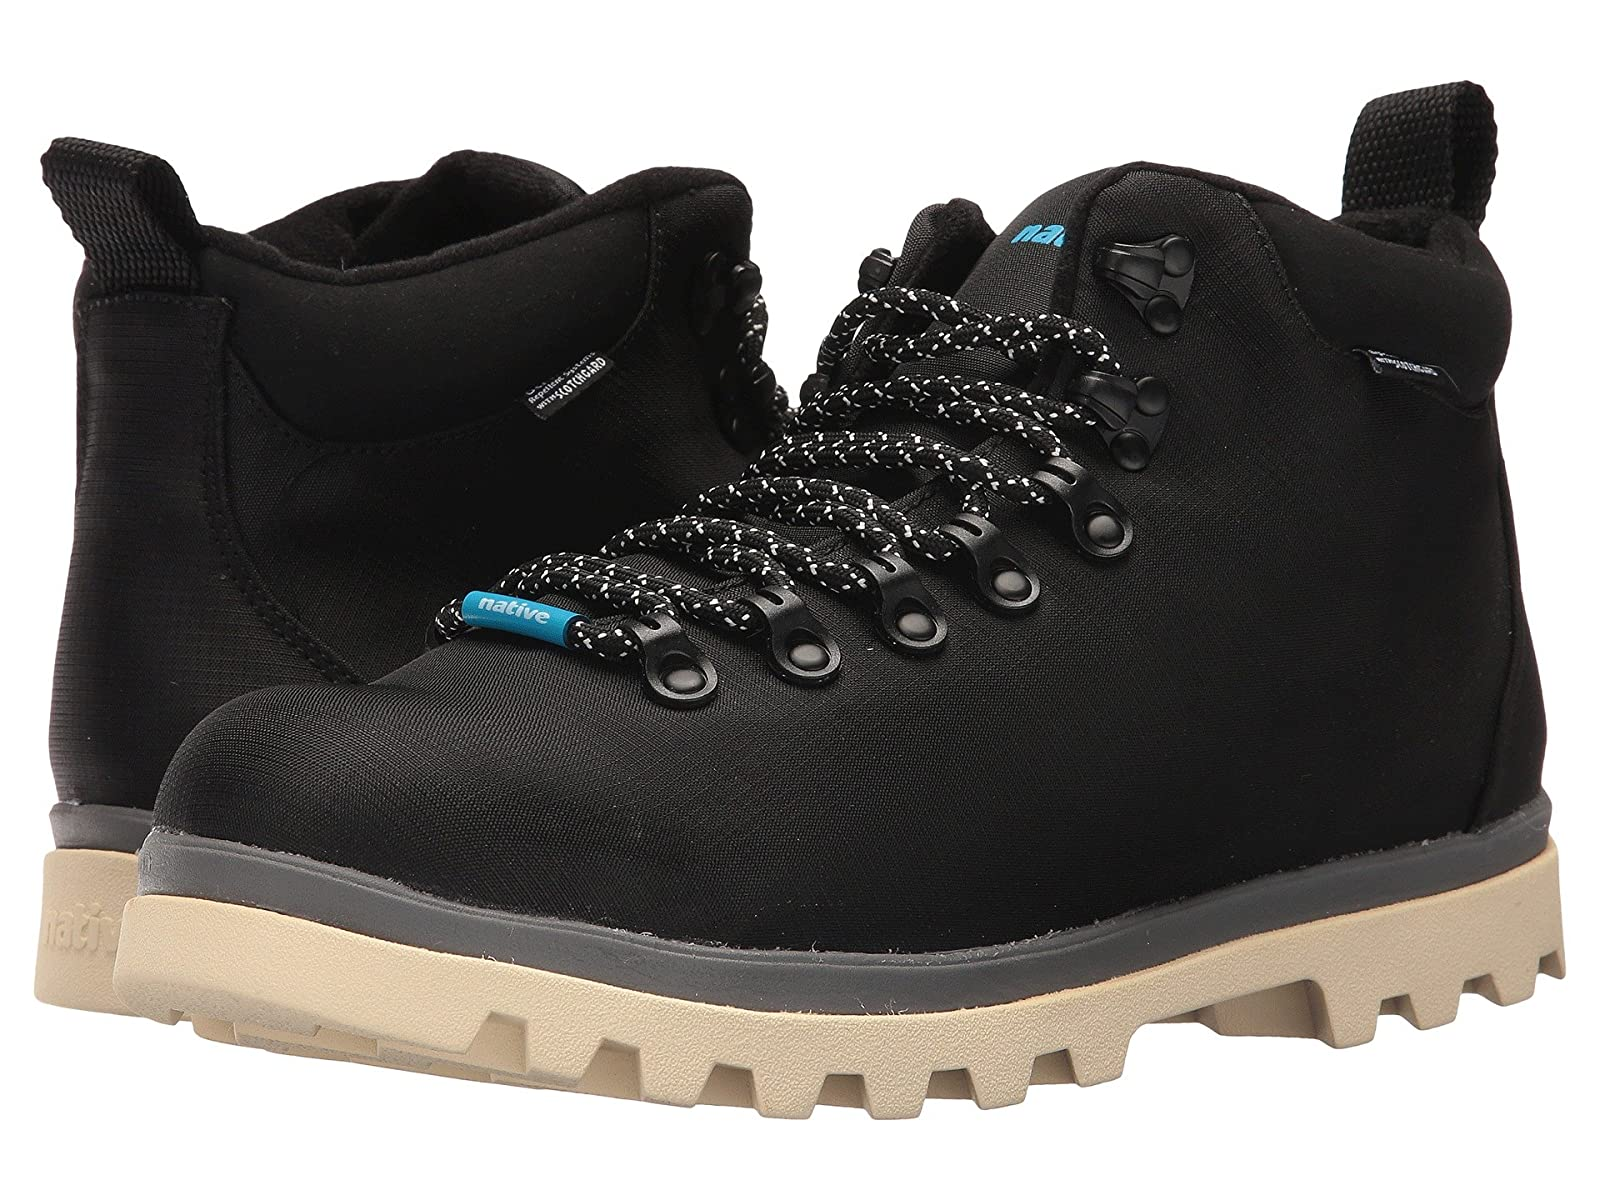 Native Shoes Fitzsimmons TrekliteEconomical and quality shoes